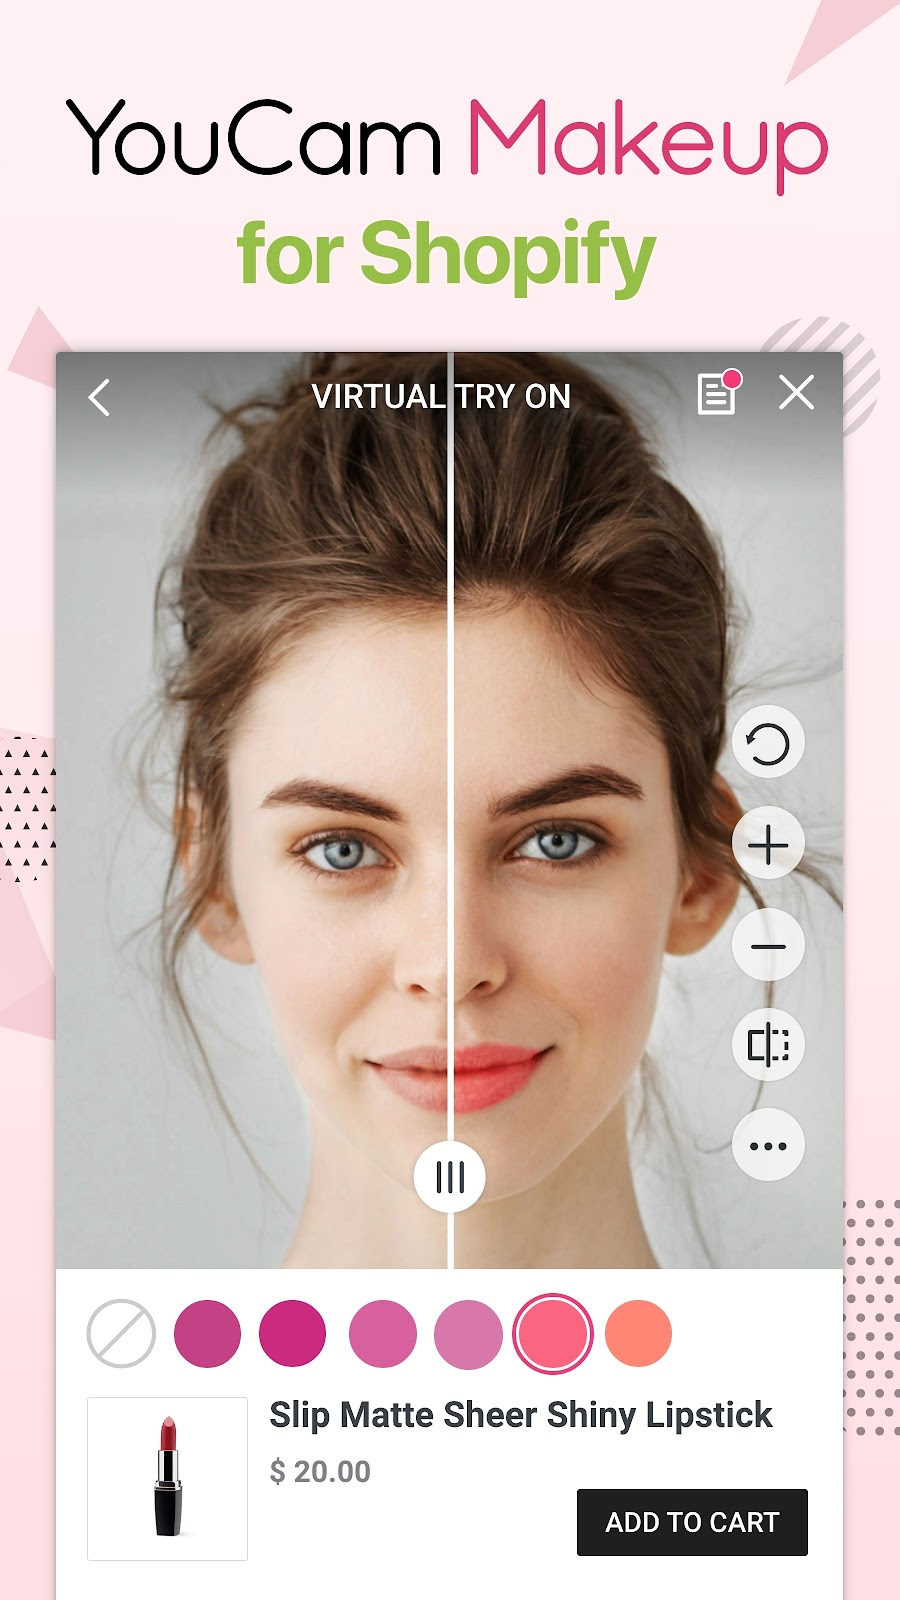 YouCam Makeup for Shopify